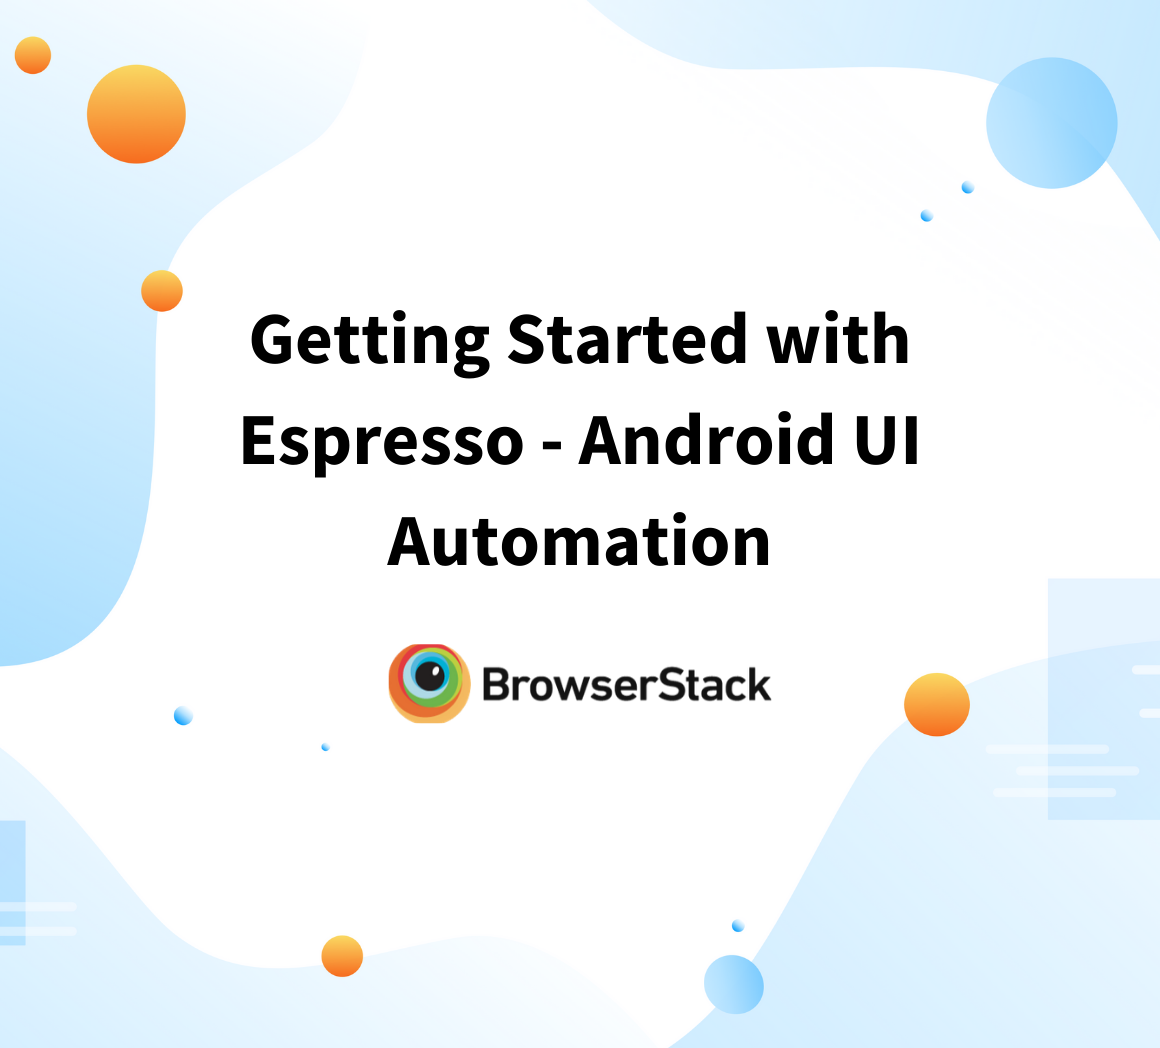 Getting Started with Espresso - Android UI Automation